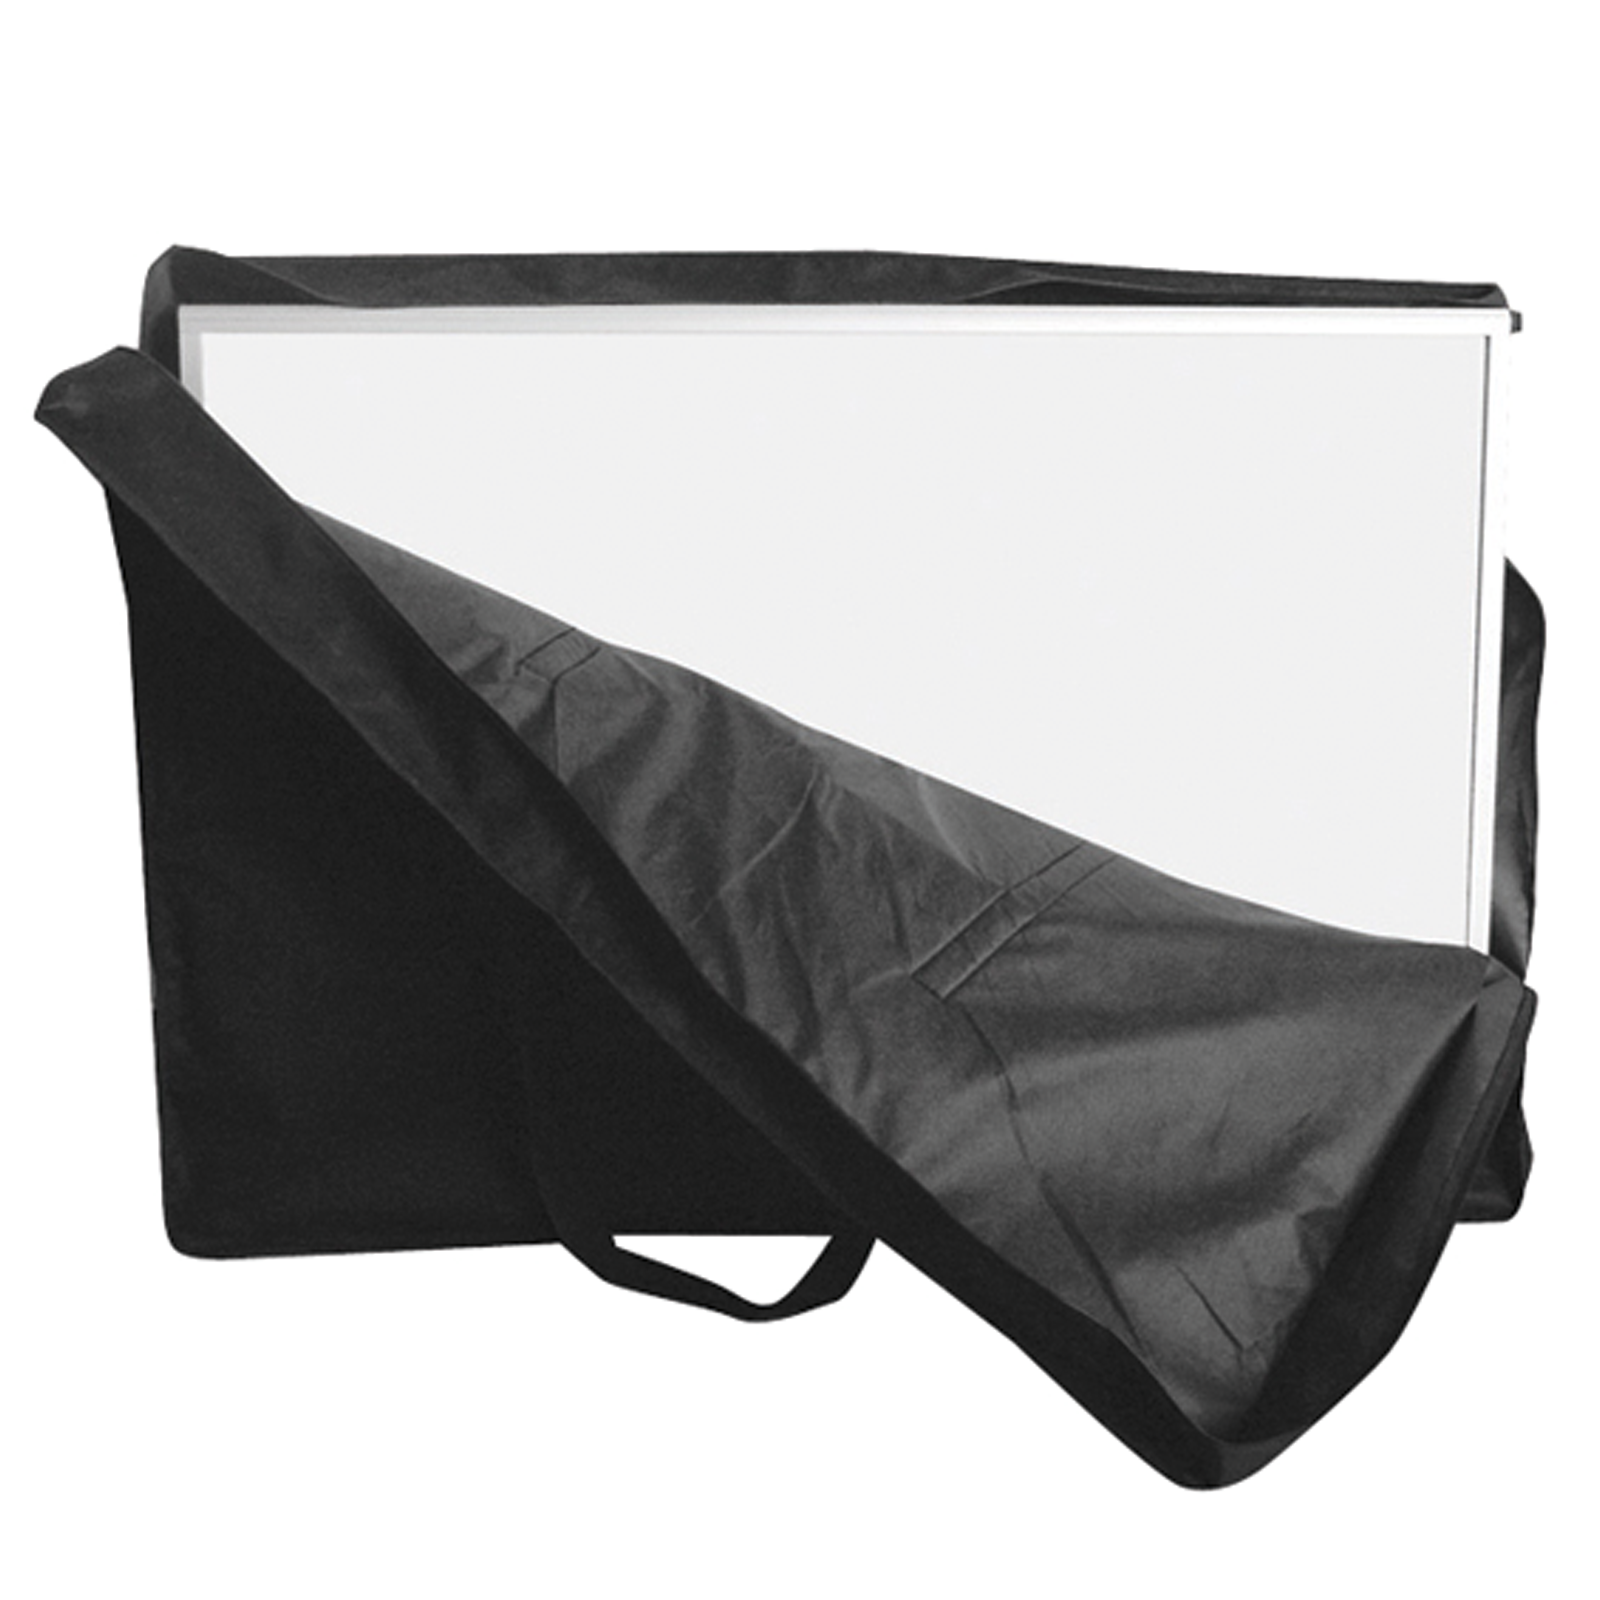 Carry Bag for Convex Promotional Display Counter